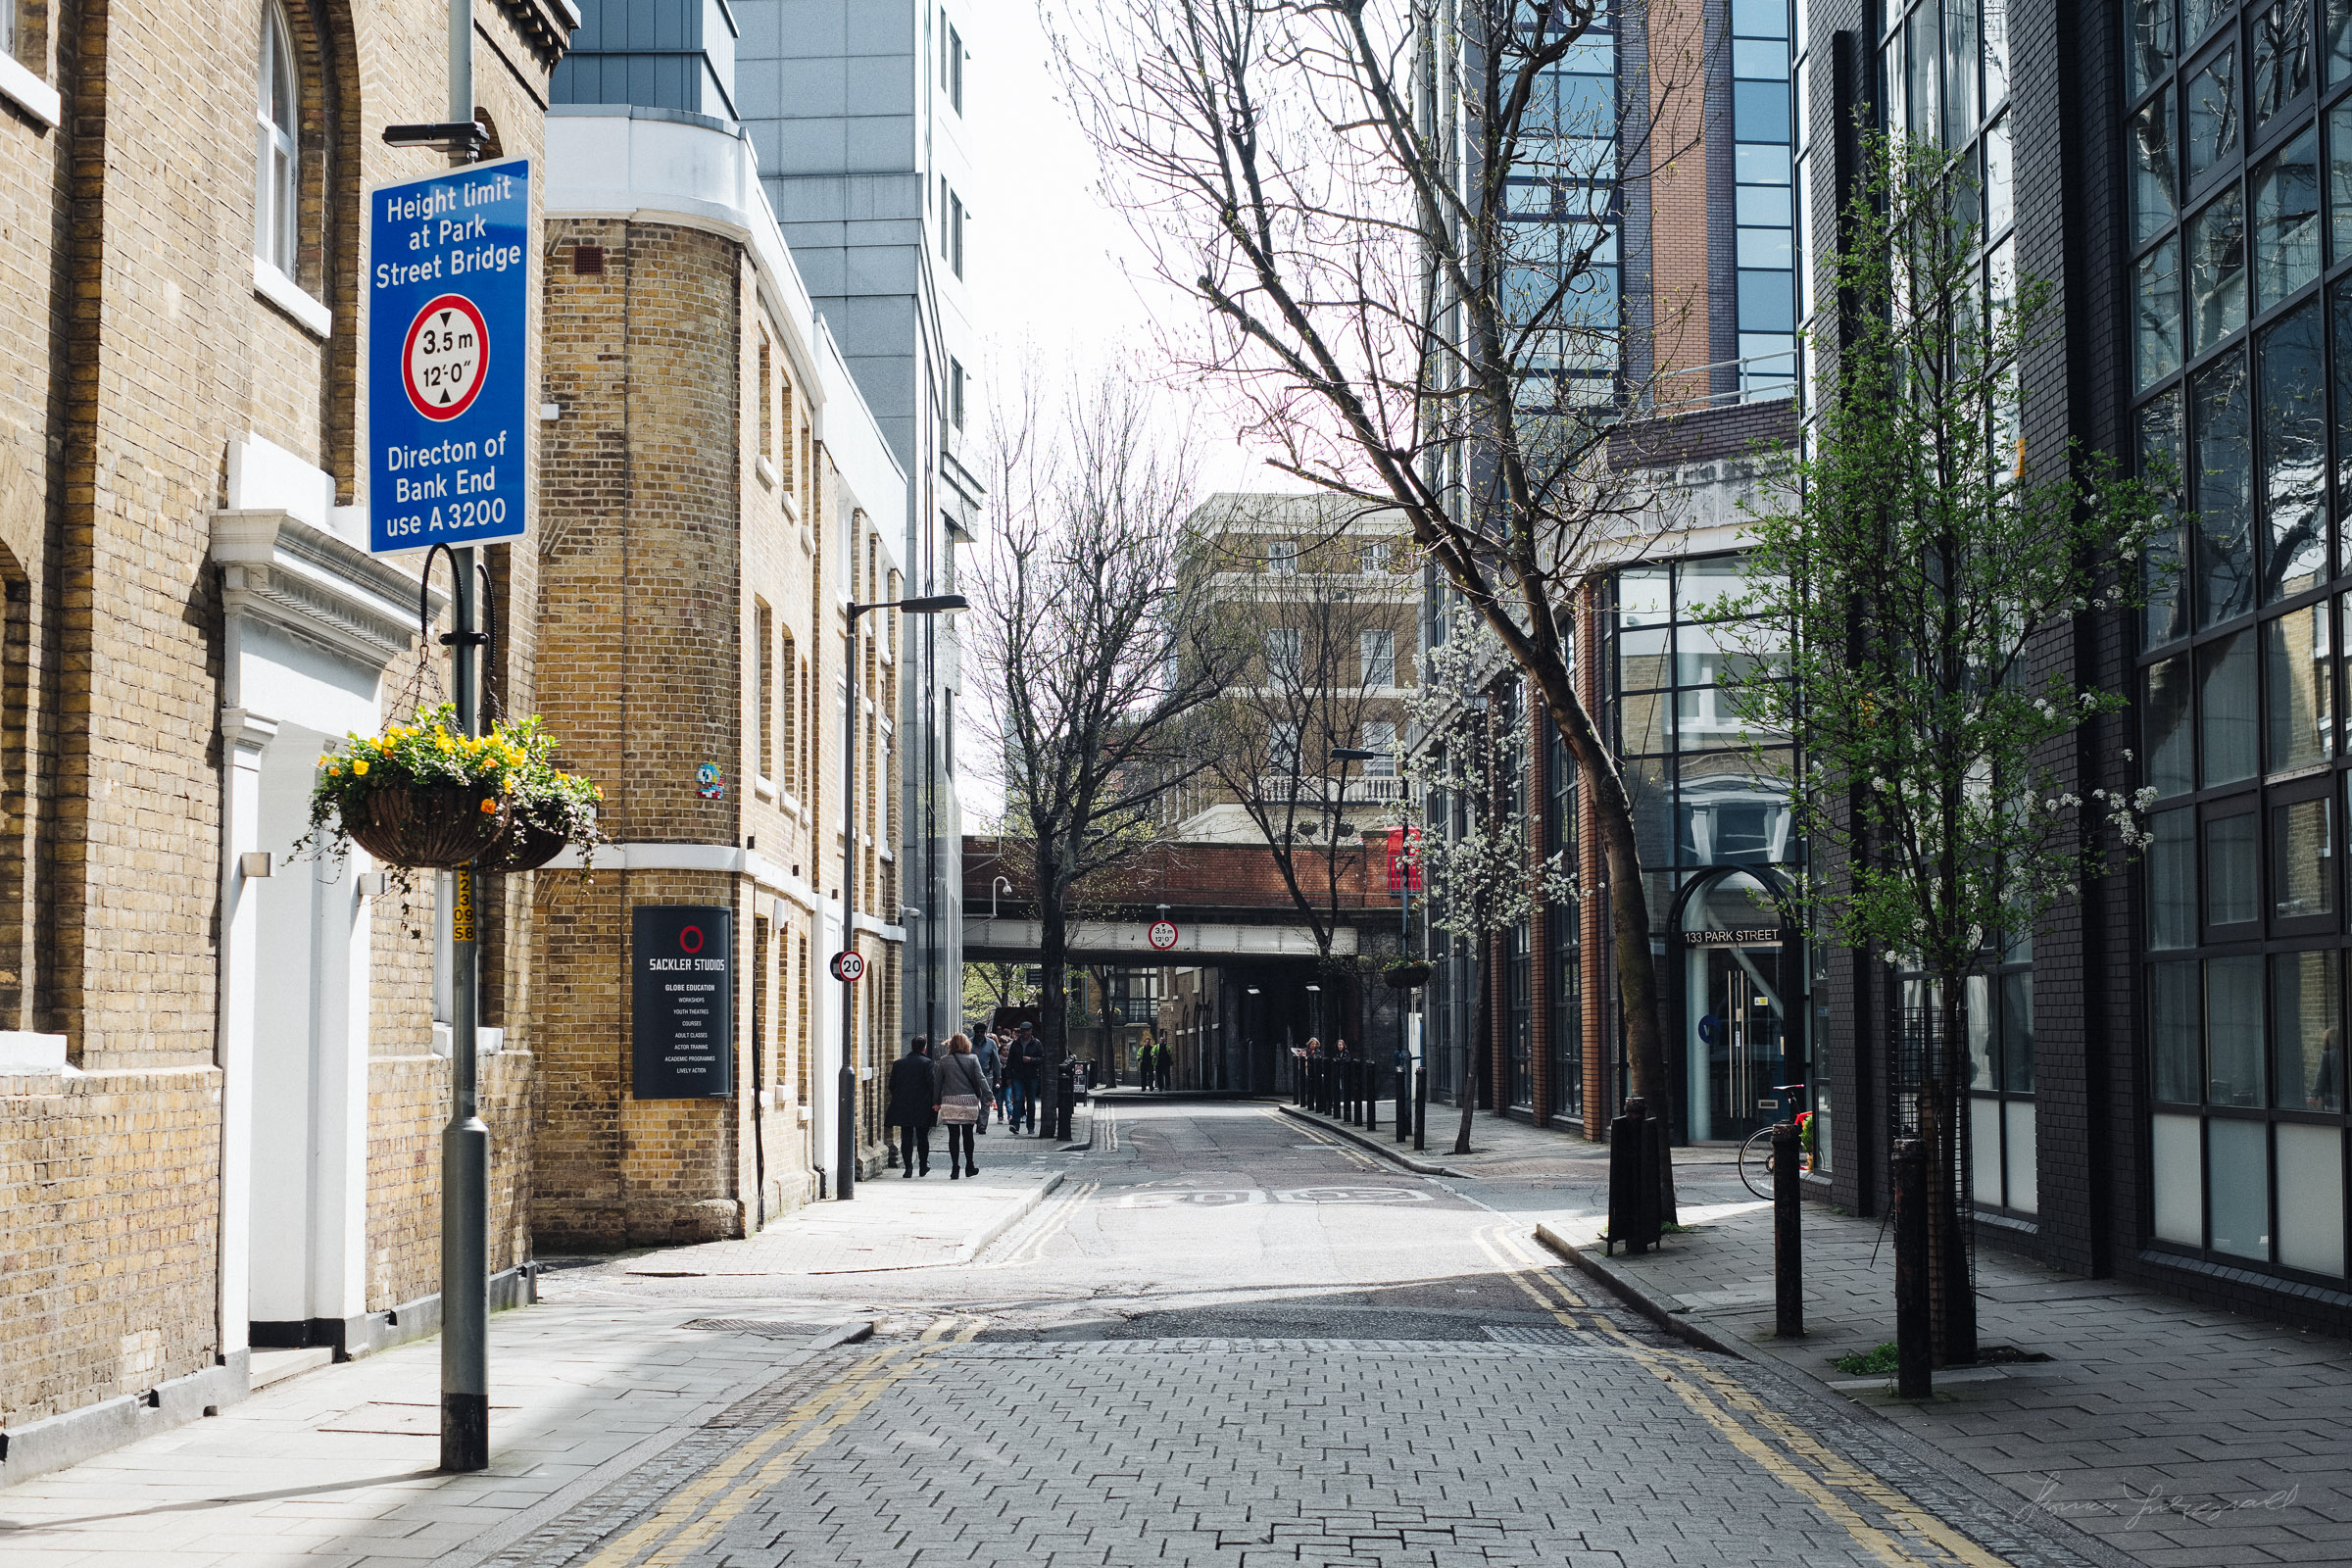 A quiet street in London's Southwark district